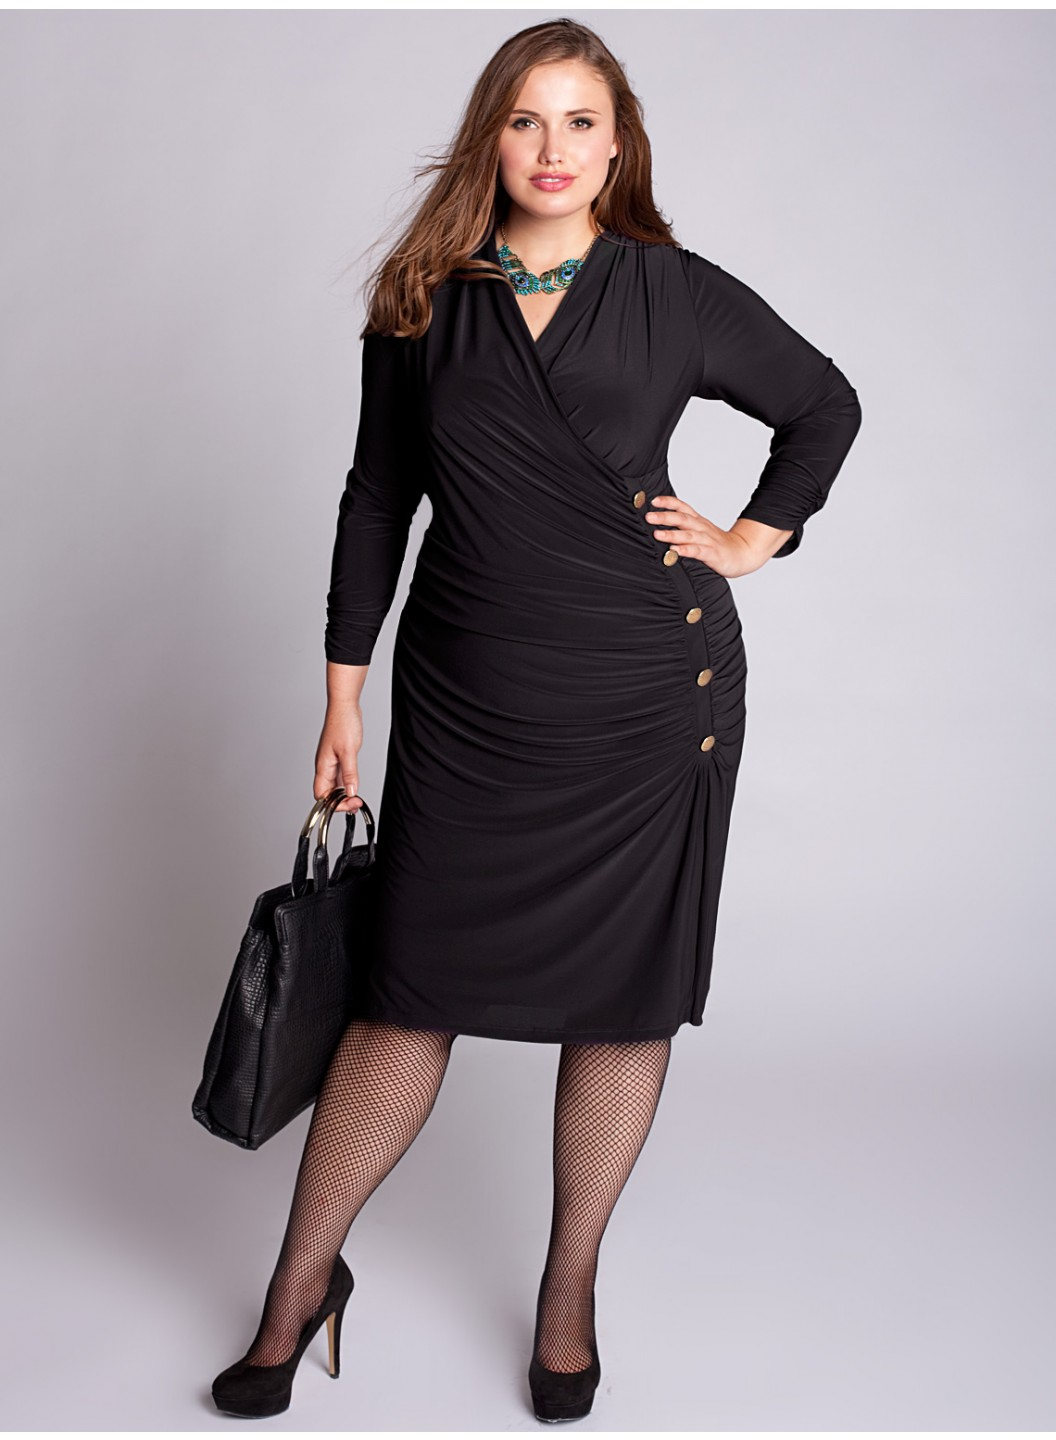 Ashley Stewart is number one for Plus Size Fashion and Trends! Find the Newest Dresses, Jeans, Tops, Bottoms, Lingerie, Plus Size Clothing and Full Figure Fashion for the Best Price.